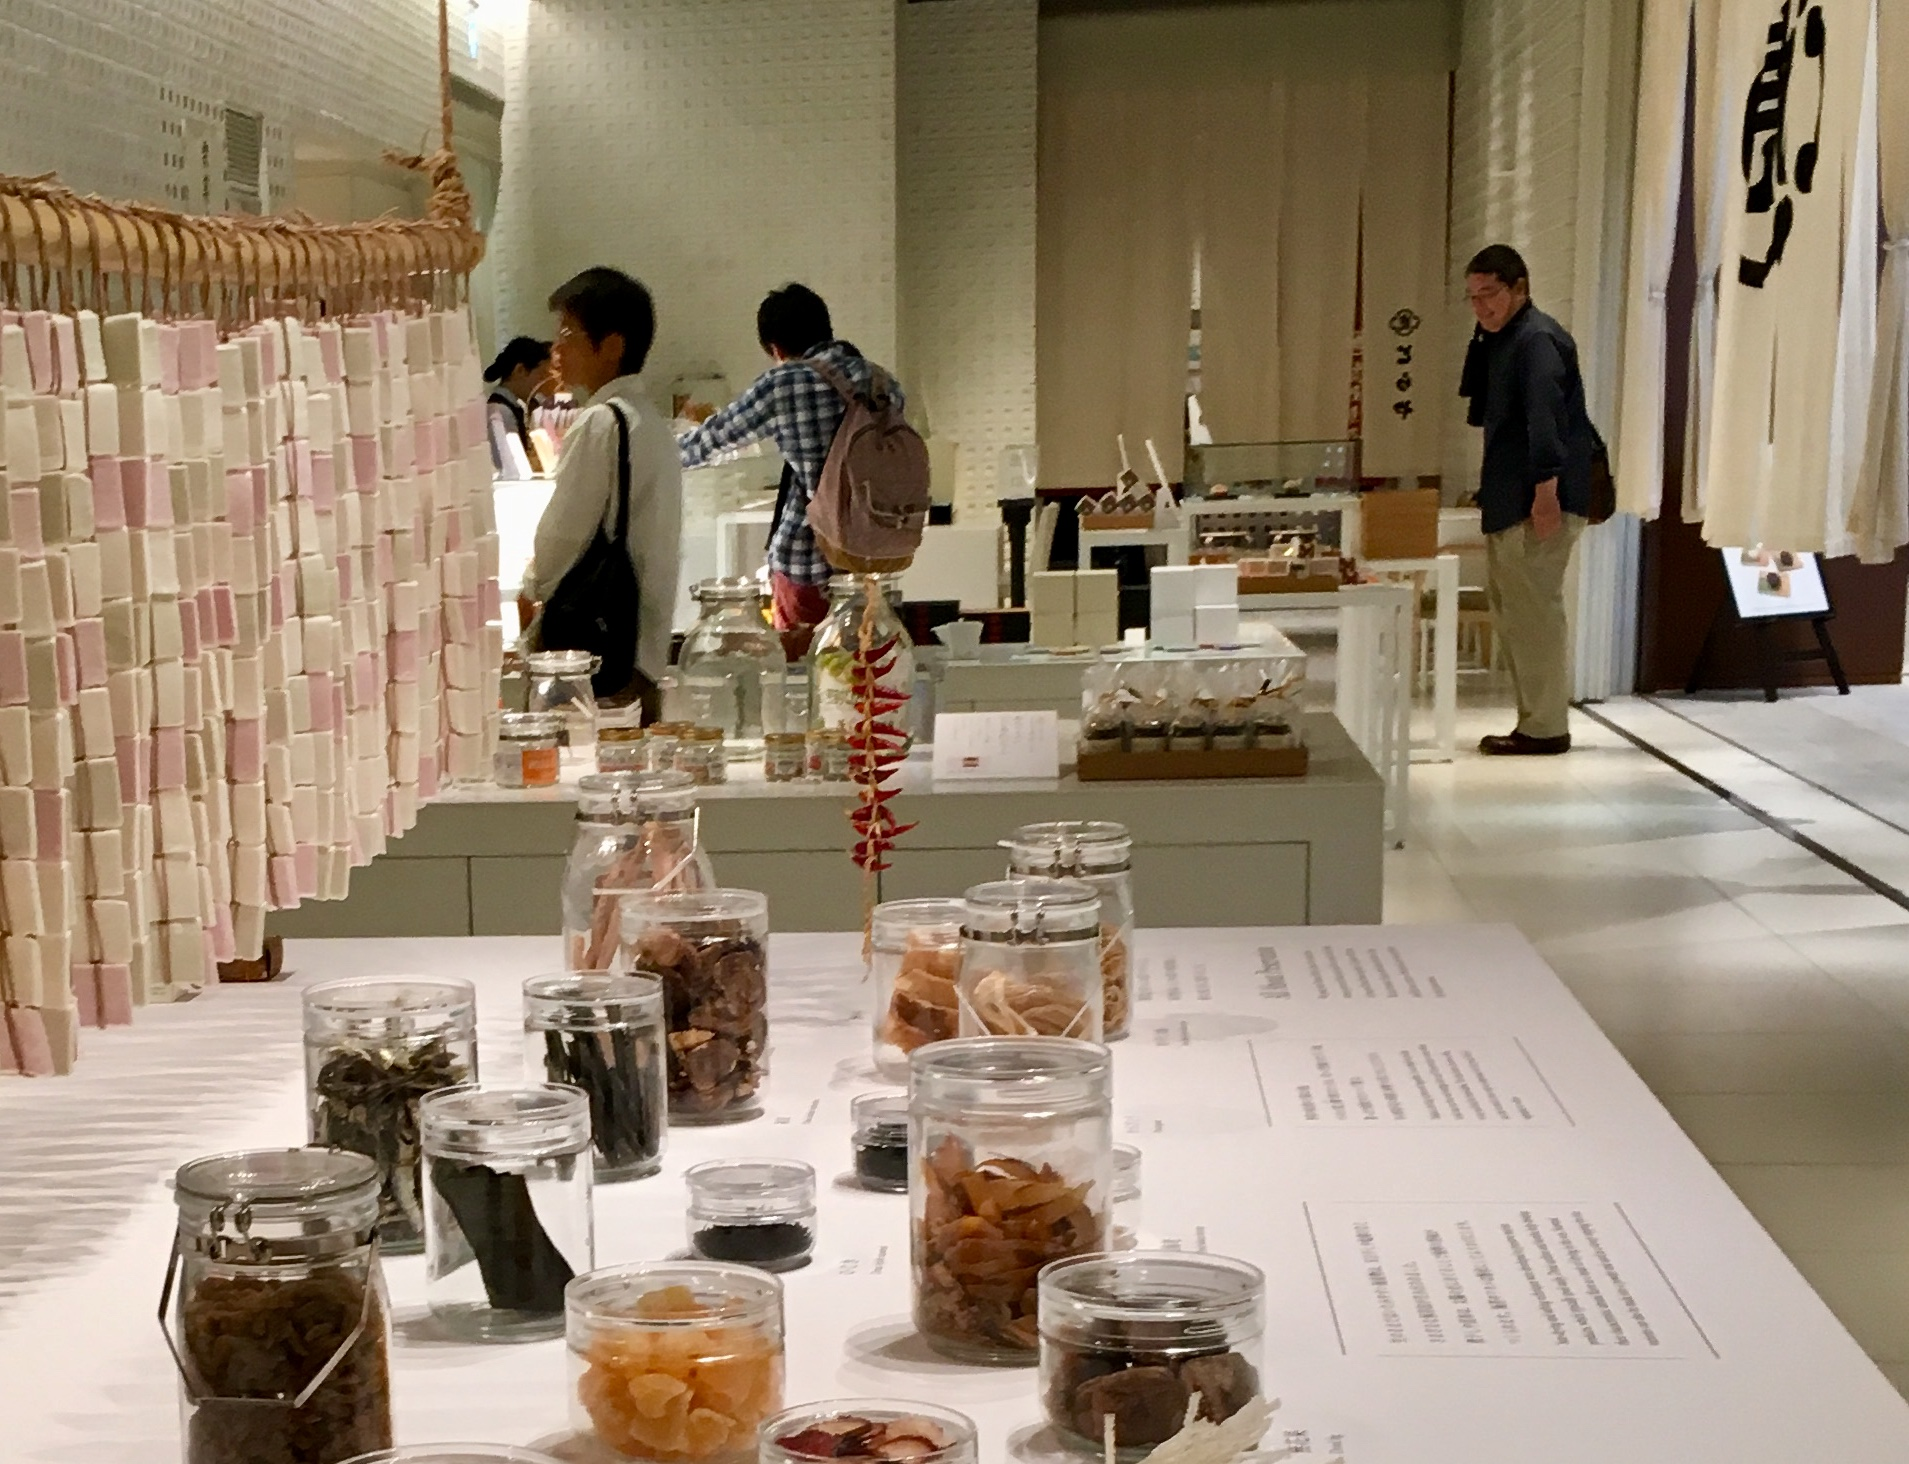 The Tokyo Midtown shop in Roppongi features a gallery and rotating exhibitions. During our visit, various forms of food preservation techniques were on display including canning, bottling and drying. The tea room is located behind the  noren  curtain in the back where patrons can enjoy items from the special seasonal menus.